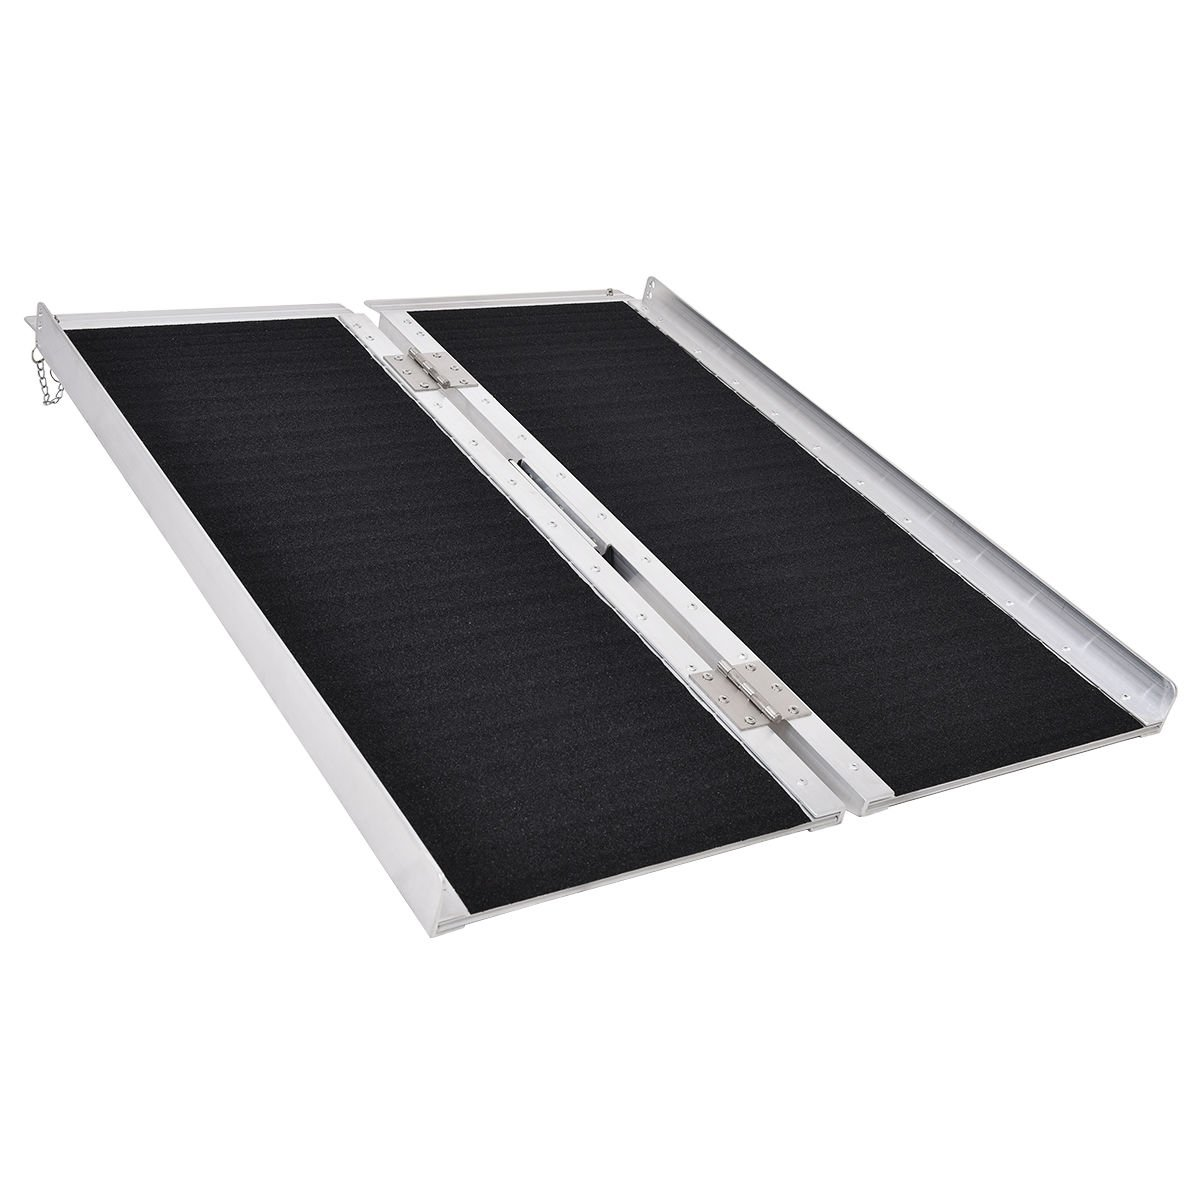 Goplus® Multi-Fold Aluminum 3' Non-skid Wheelchair Ramp Mobility Scooter Mobility Ramp (3' x 30'')